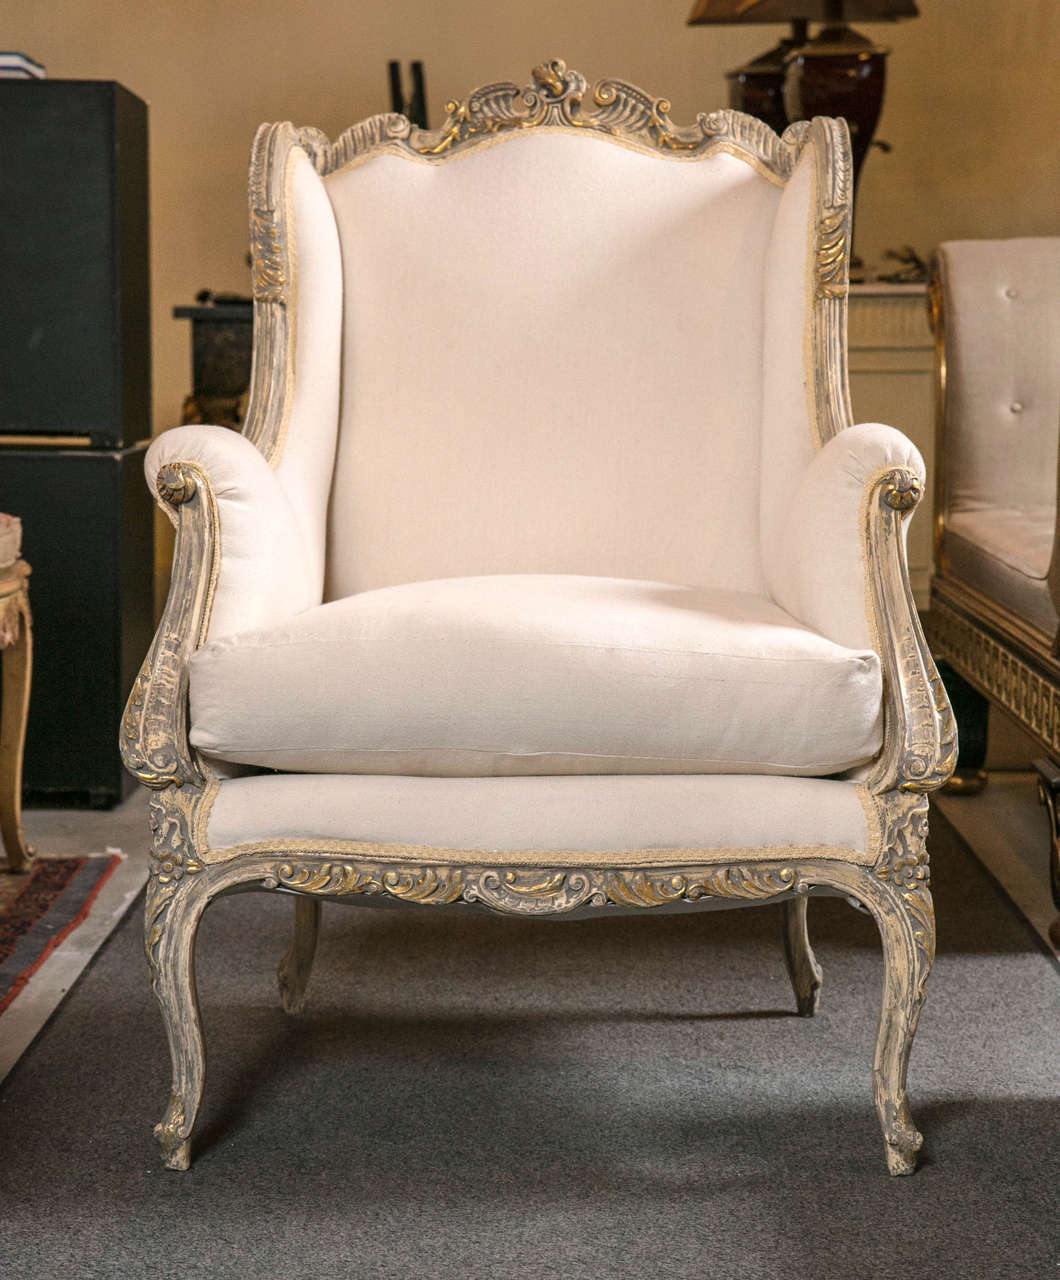 bergere chairs wedding chair covers for rent pair of french rococo style wingback bergère at 1stdibs